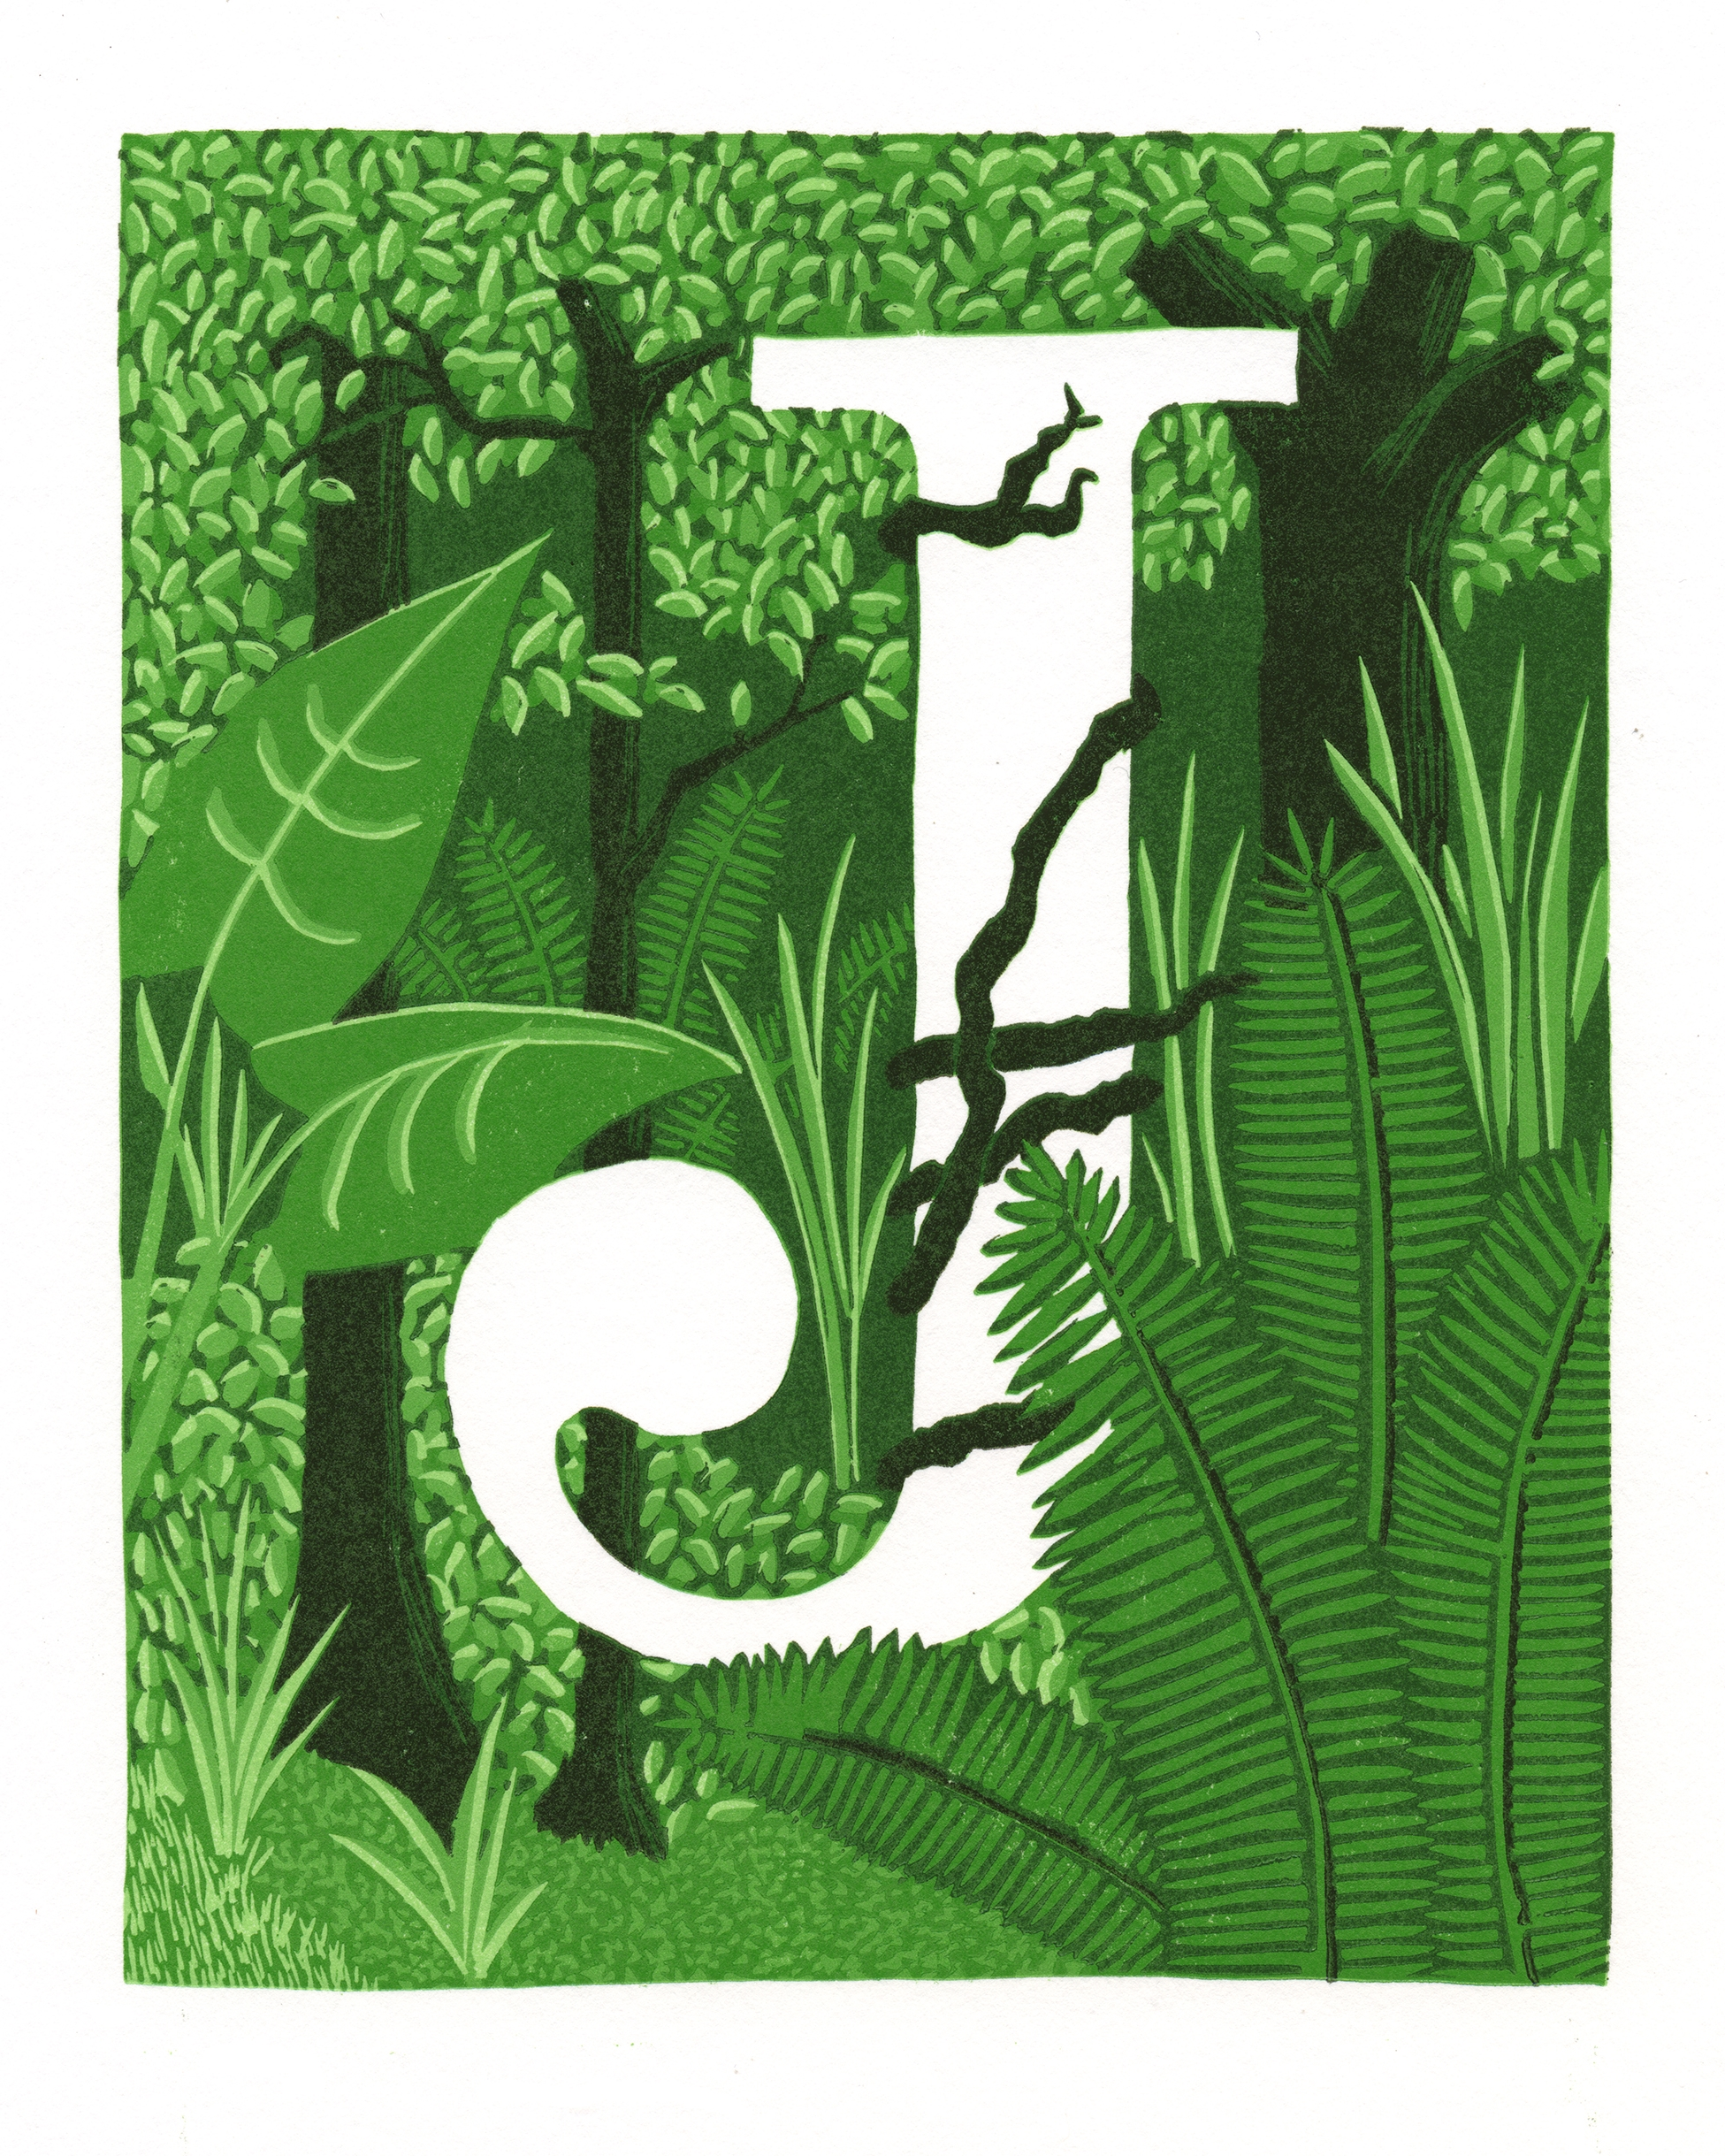 J is for Jungle, 2015